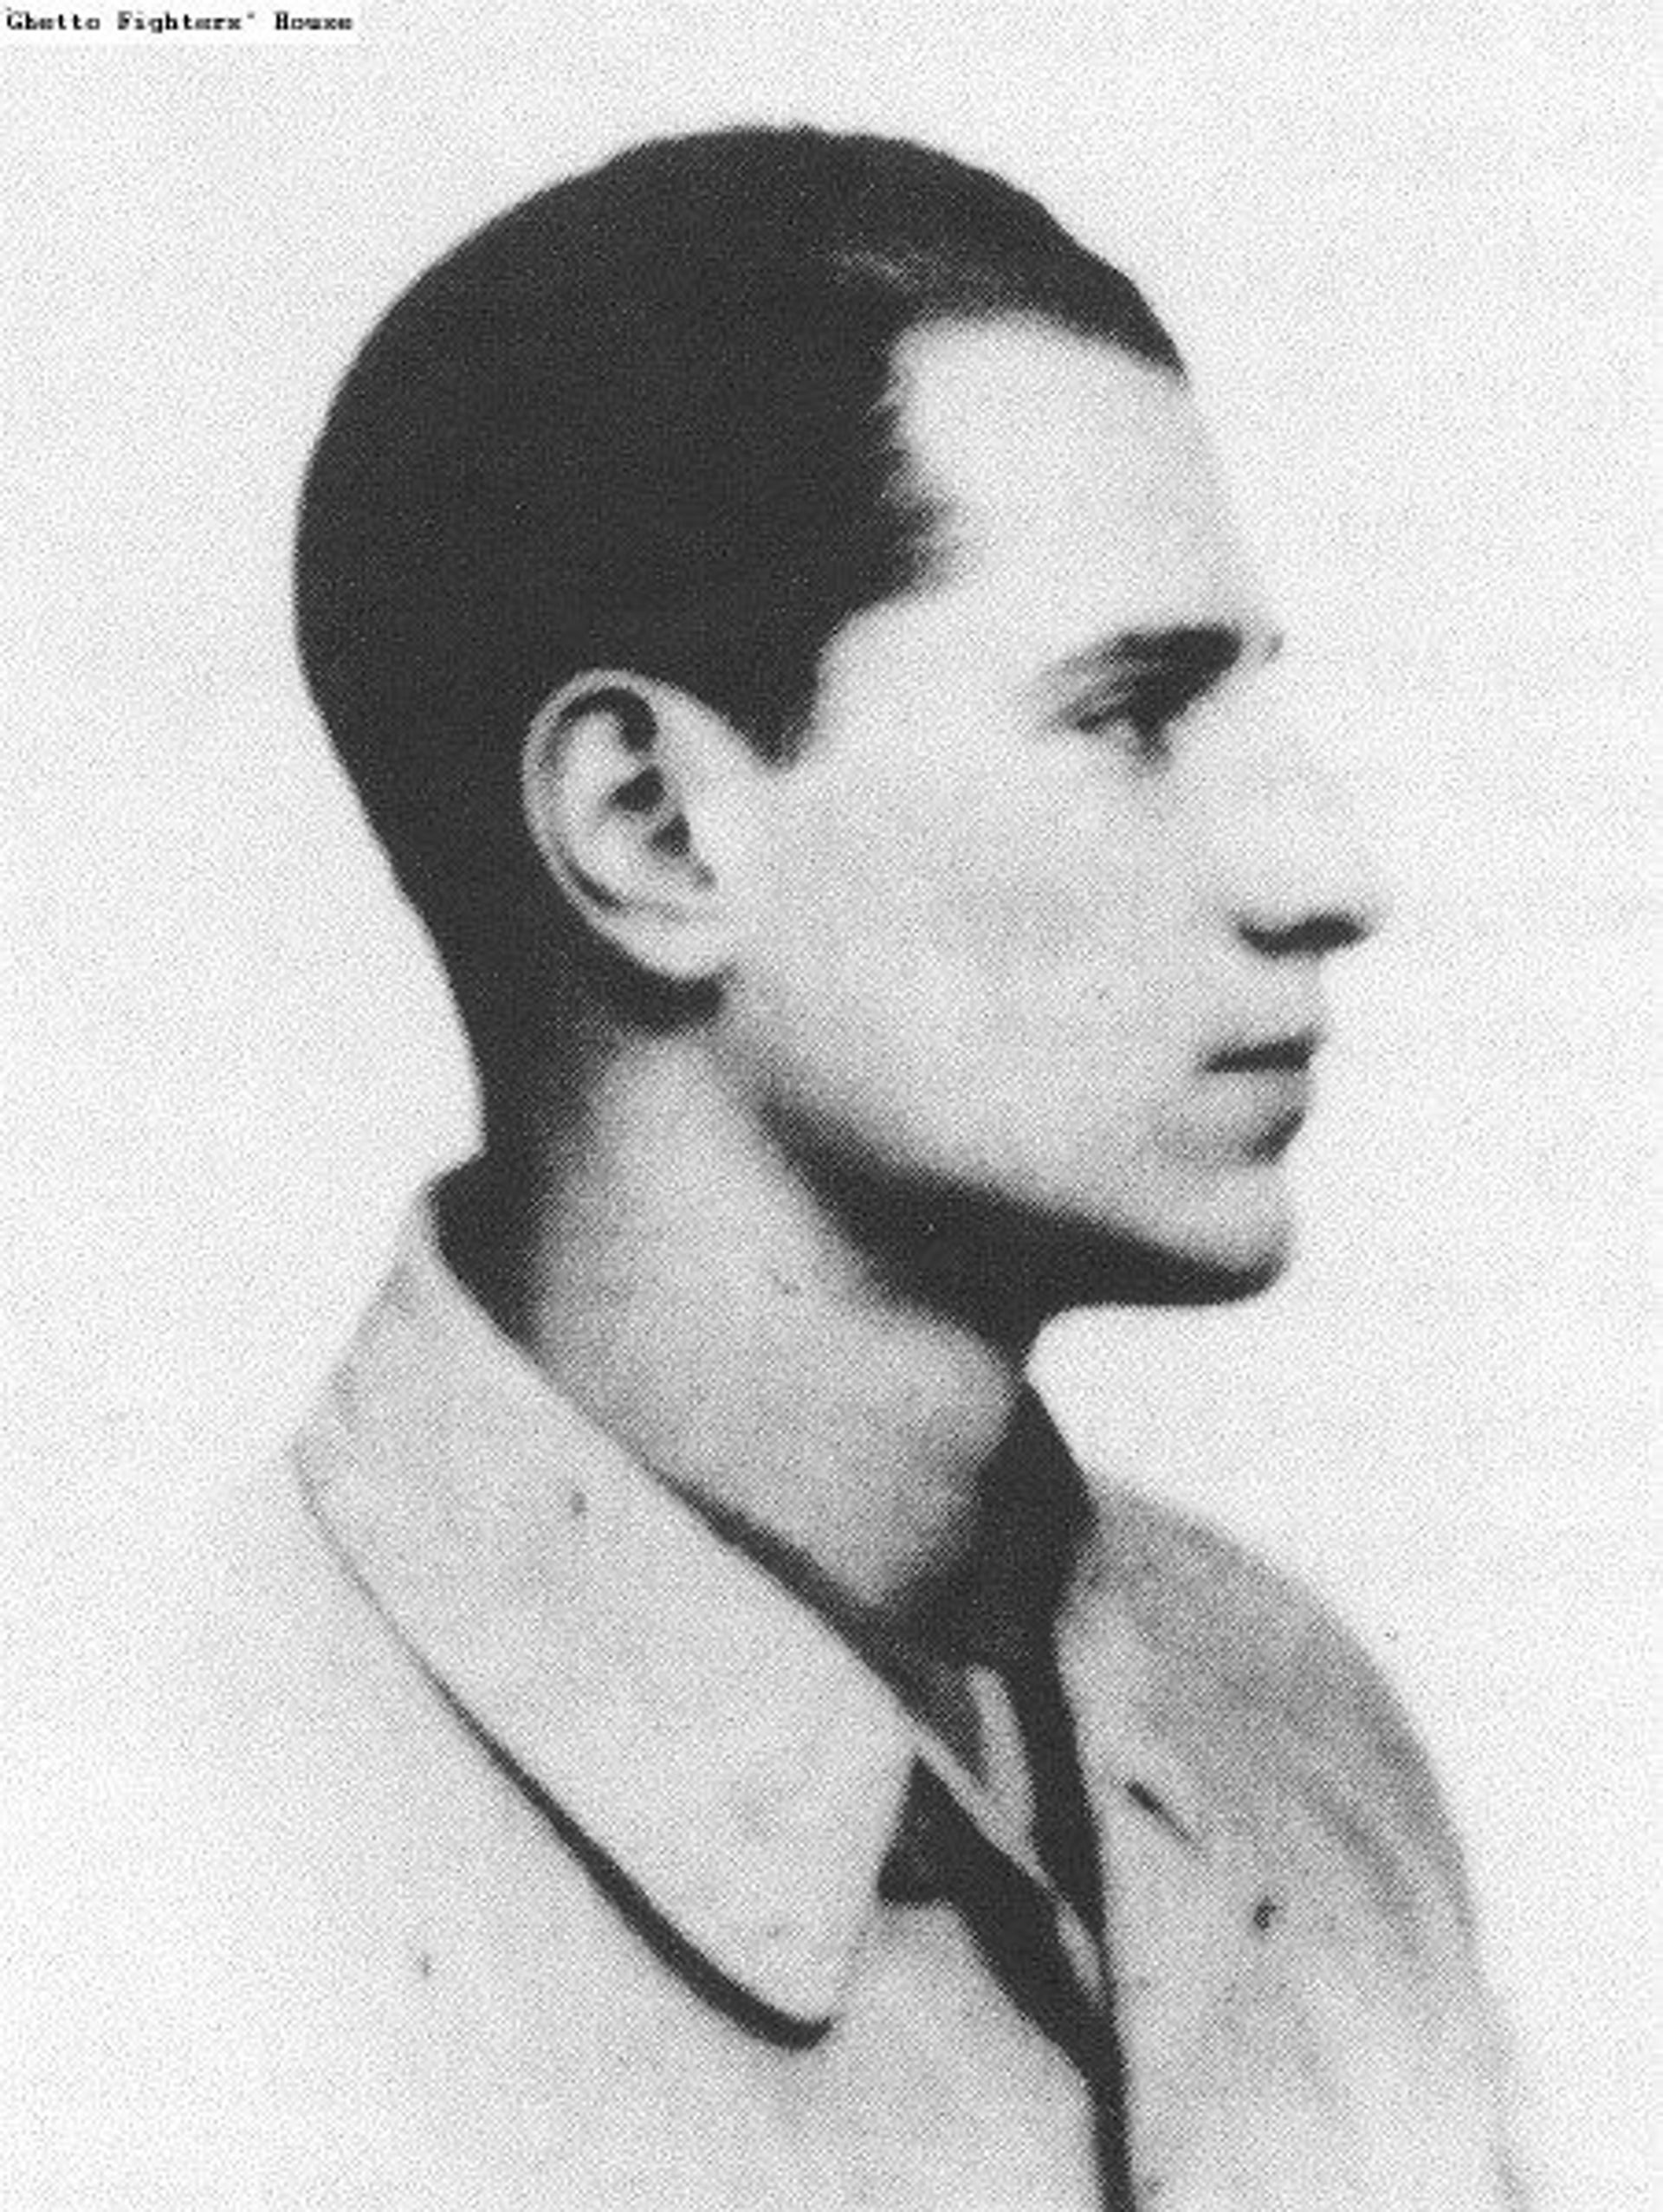 José Aboulker, leader of the Jewish resistance in Algeria during World War II.